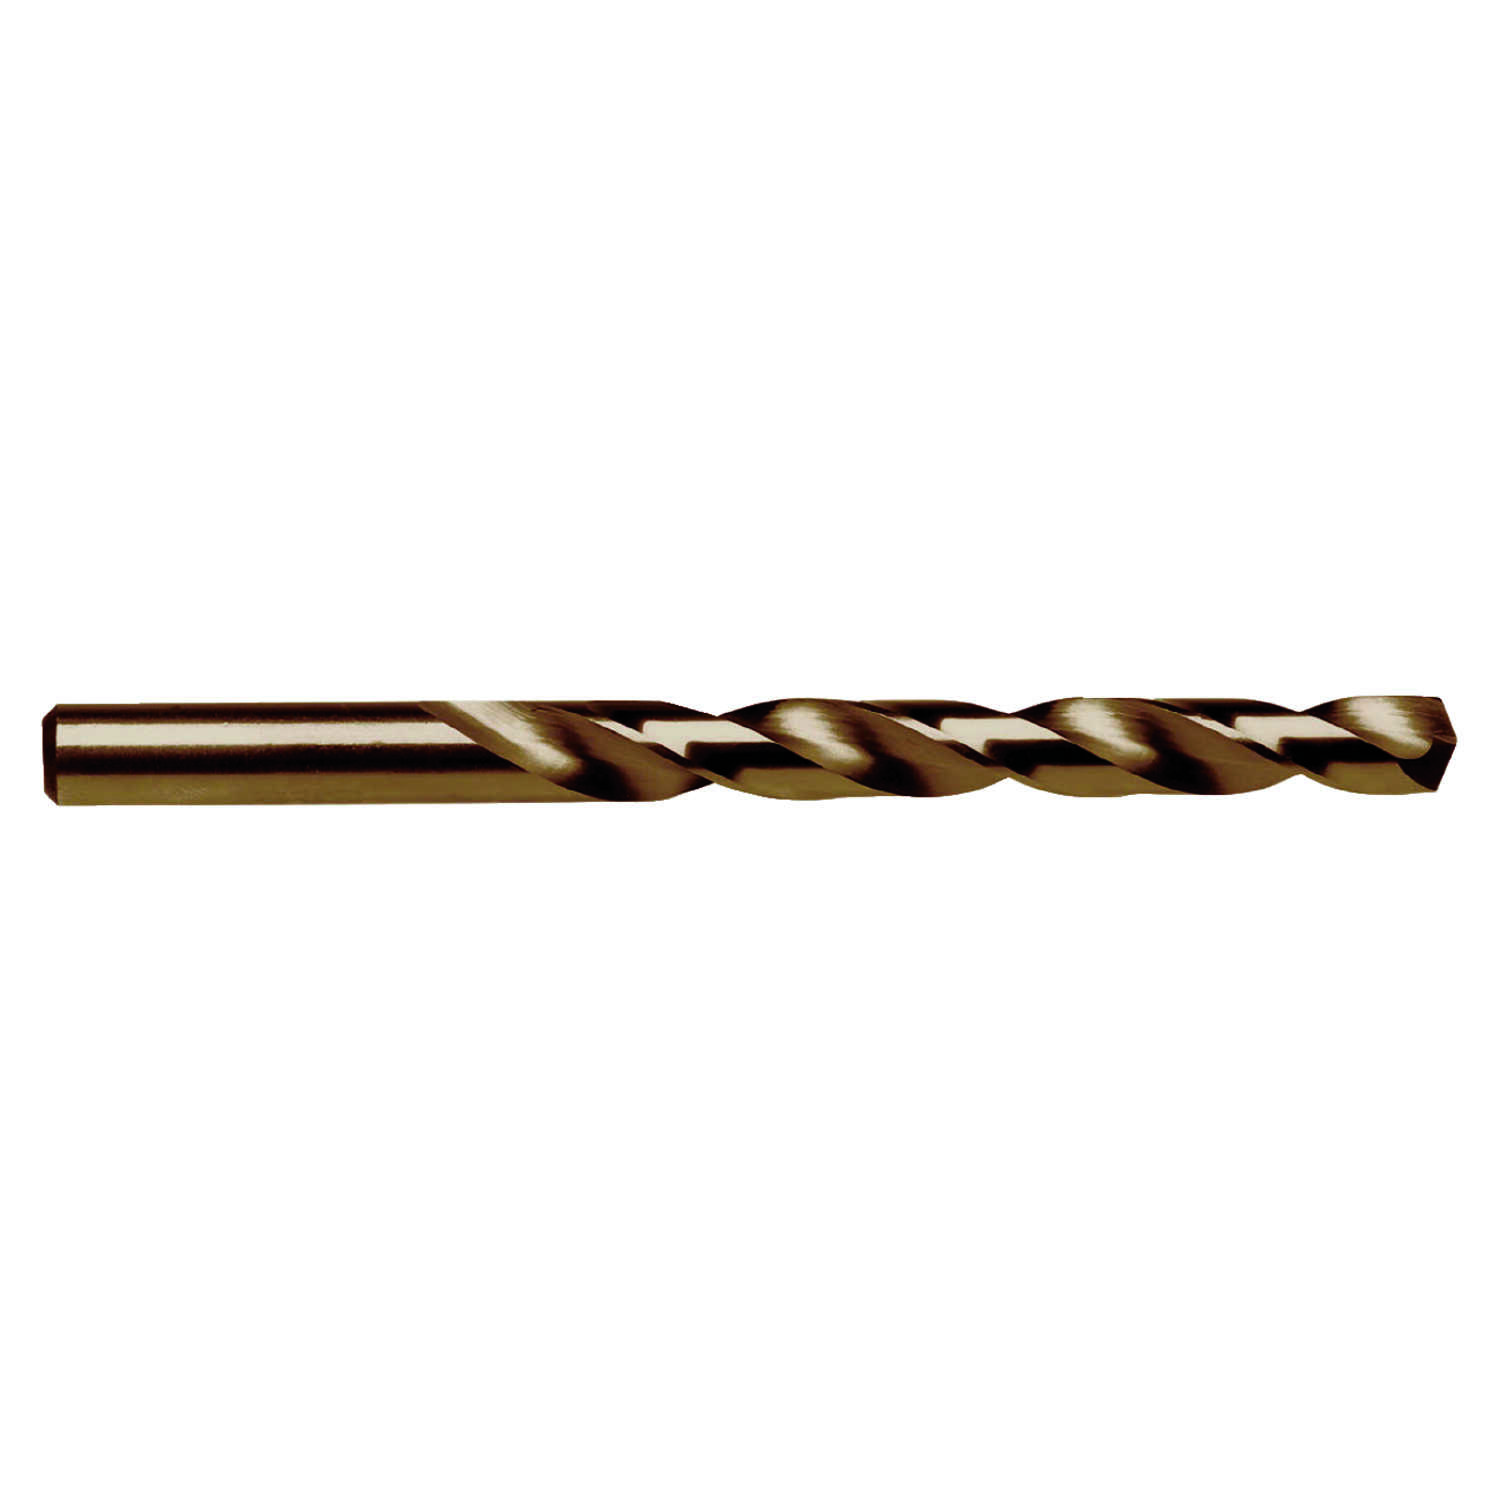 Irwin  Cobalt  3/32 in. Dia. x 2-1/4 in. L High Speed Steel  Drill Bit  Straight Shank  1 pc.